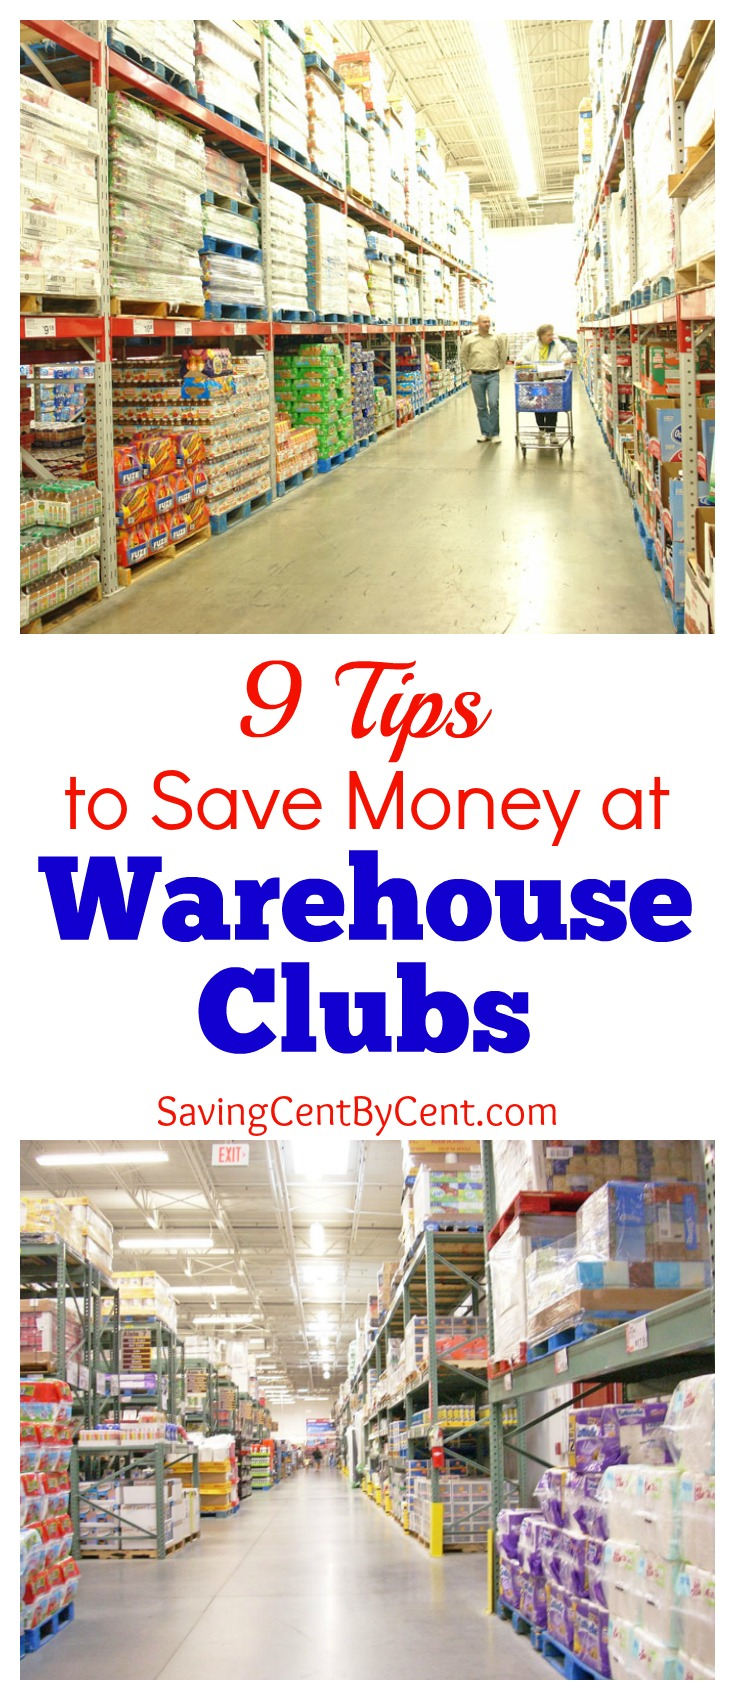 Tips to Save Money at Warehouse Clubs